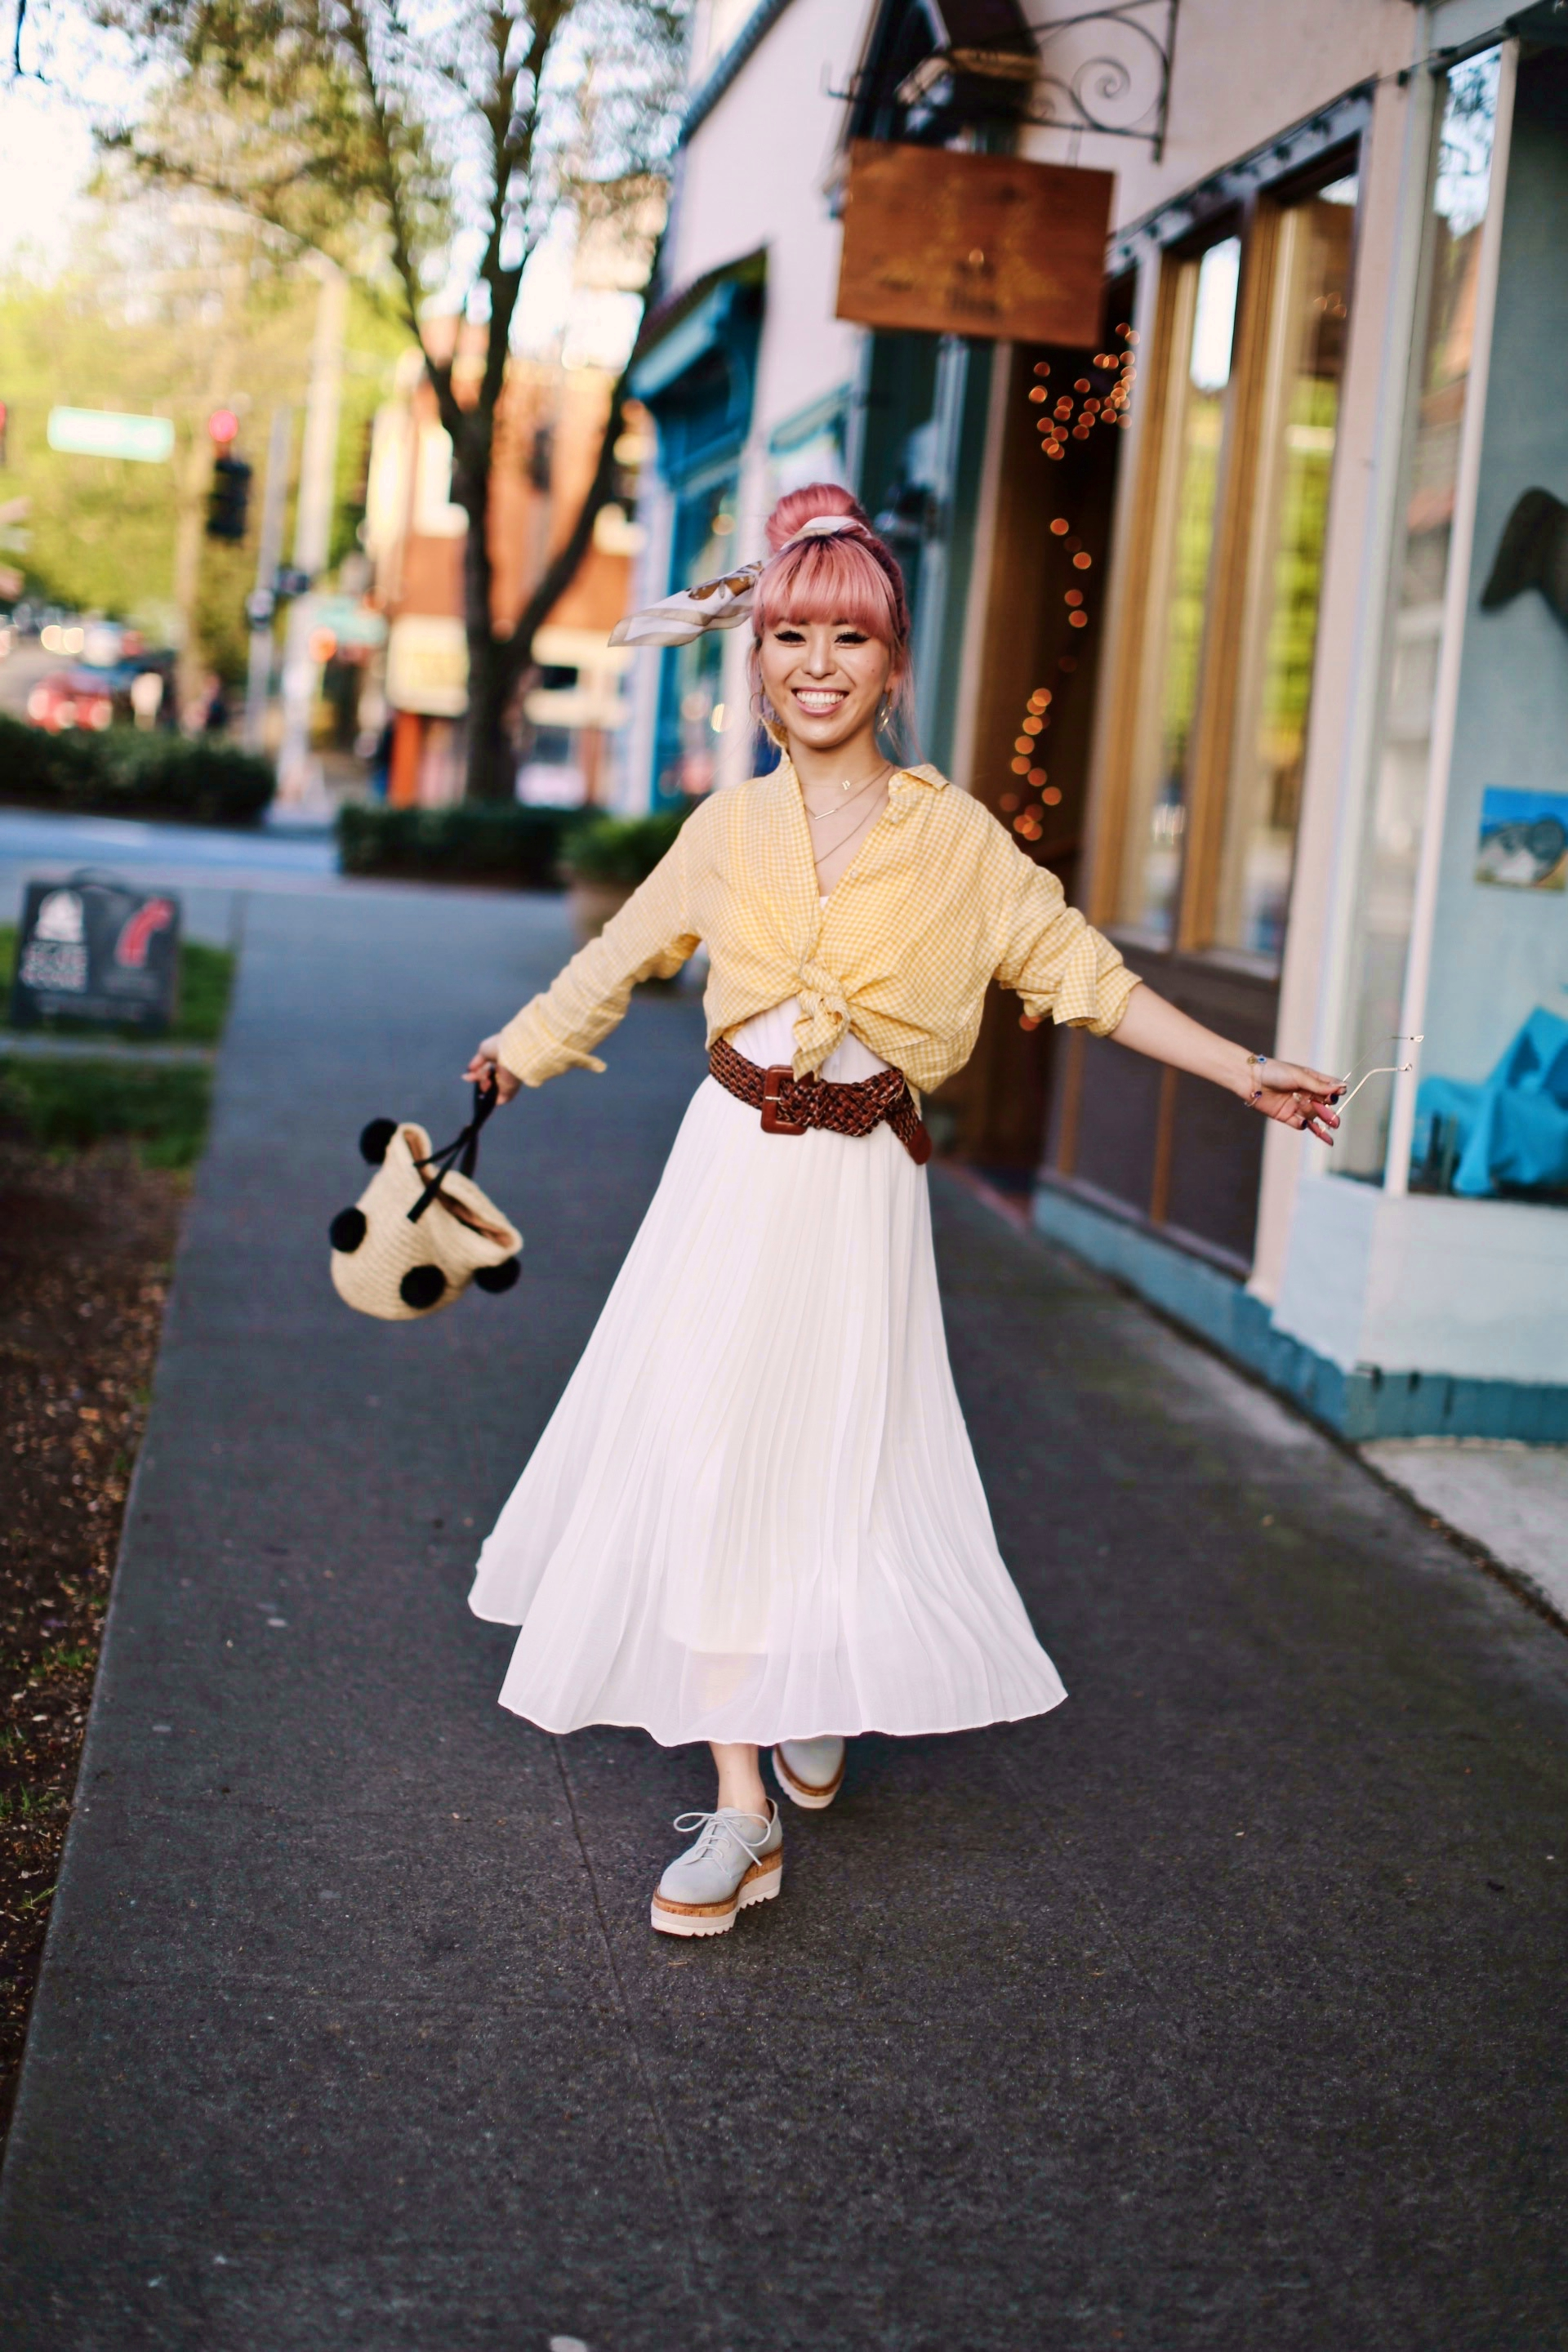 Uniqlo yellow Linen gingham shirt-Uniqlo White pleated chiffon midi skirt-Uniqlo Airism brat-pink tinted sunglasses ZERO UV-She in Pom pom Straw bucket bag-Vintage scarf bun hair style-Steve Madden Belt-Jane and the shoe denim oxford platforms-Aika's Love Closet-seattle fashion style blogger-Japanese-pink hair-smiling-spring fashion 13